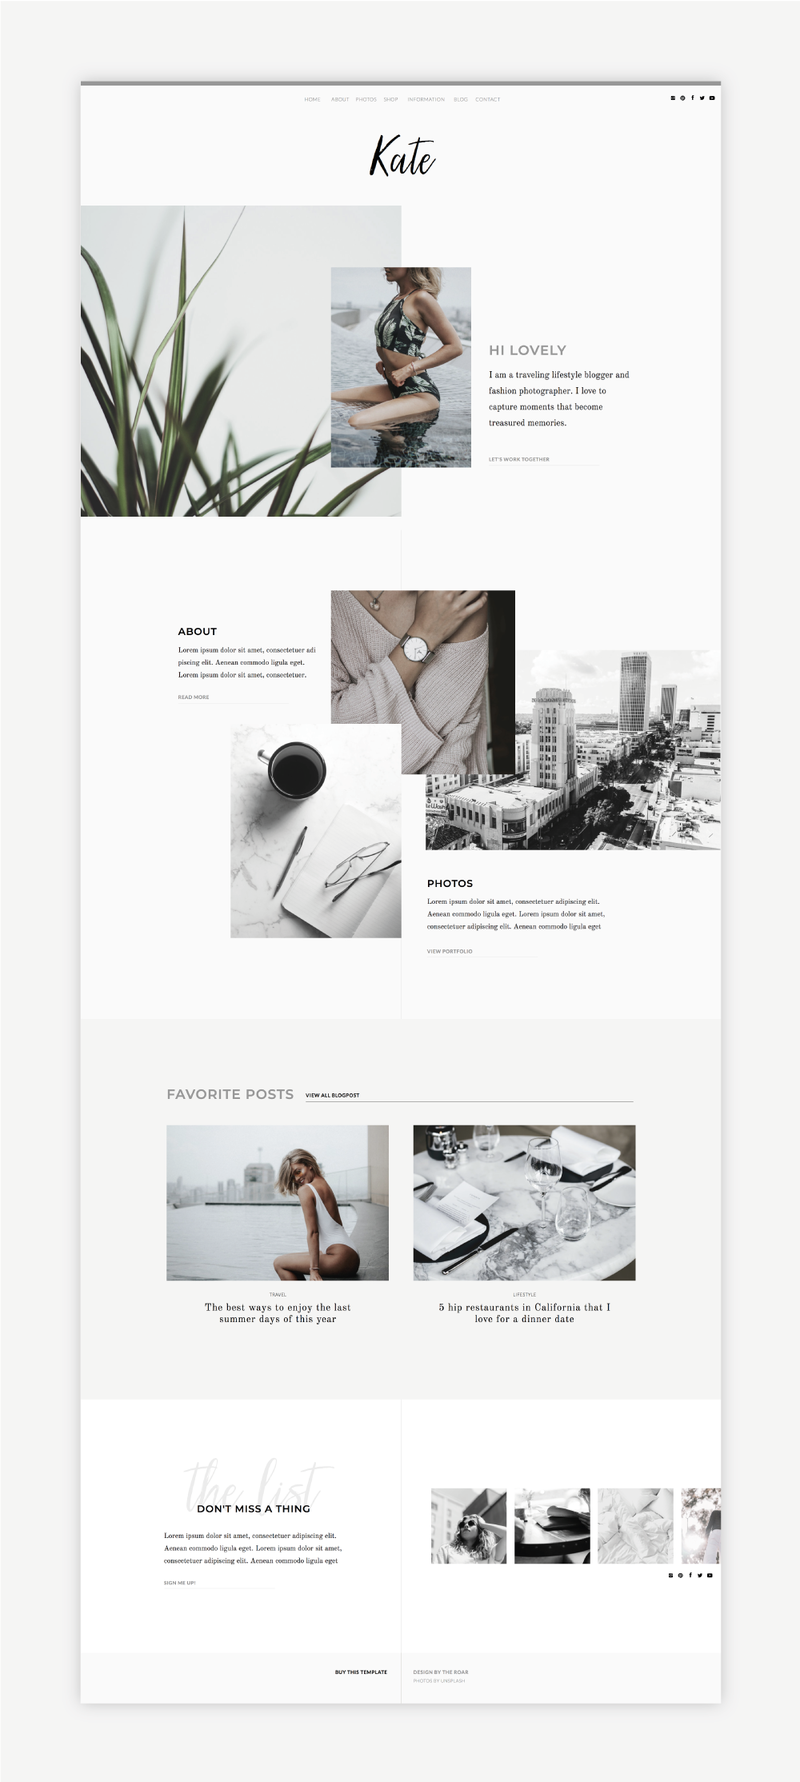 The-Roar-Showit-Web-Design-Showit-Template-Kate-Shop-Image